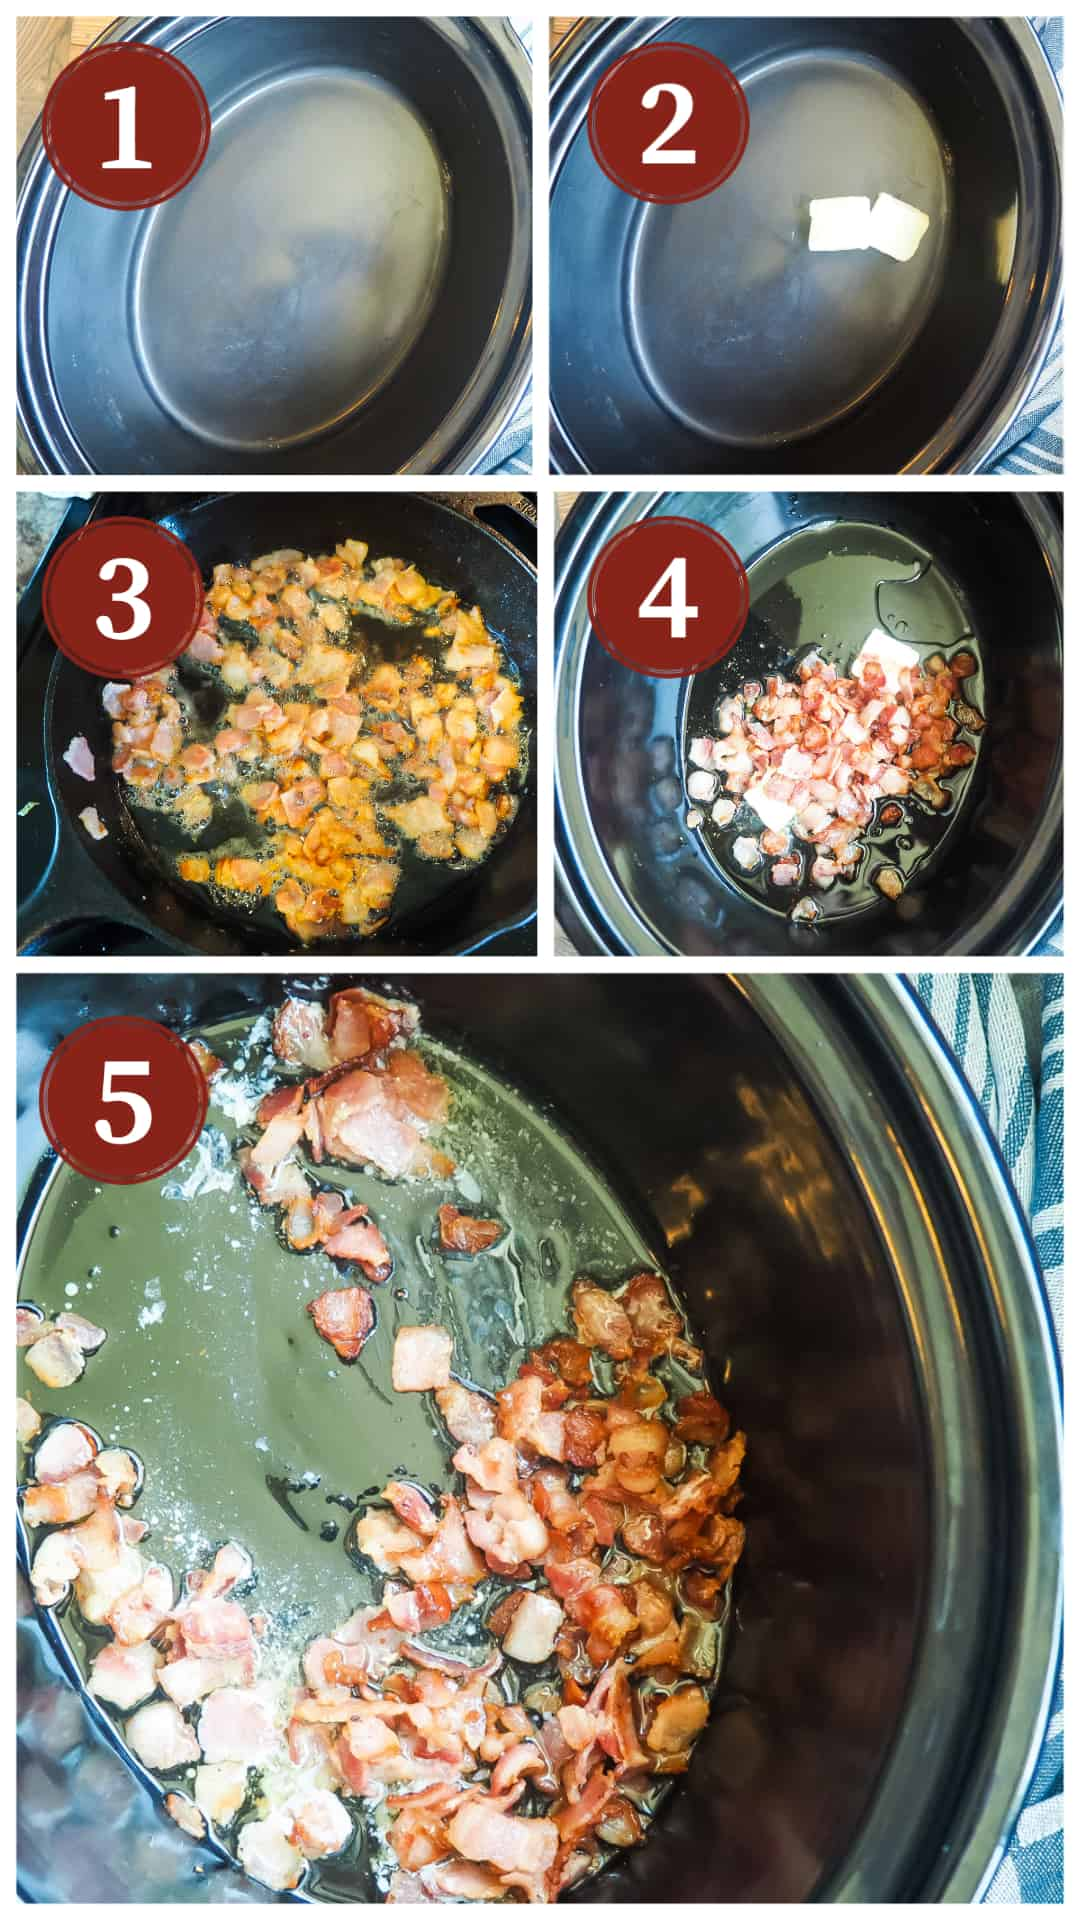 Images showing the process of cooking white beans and ham in a slow cooker, steps 1 - 5.